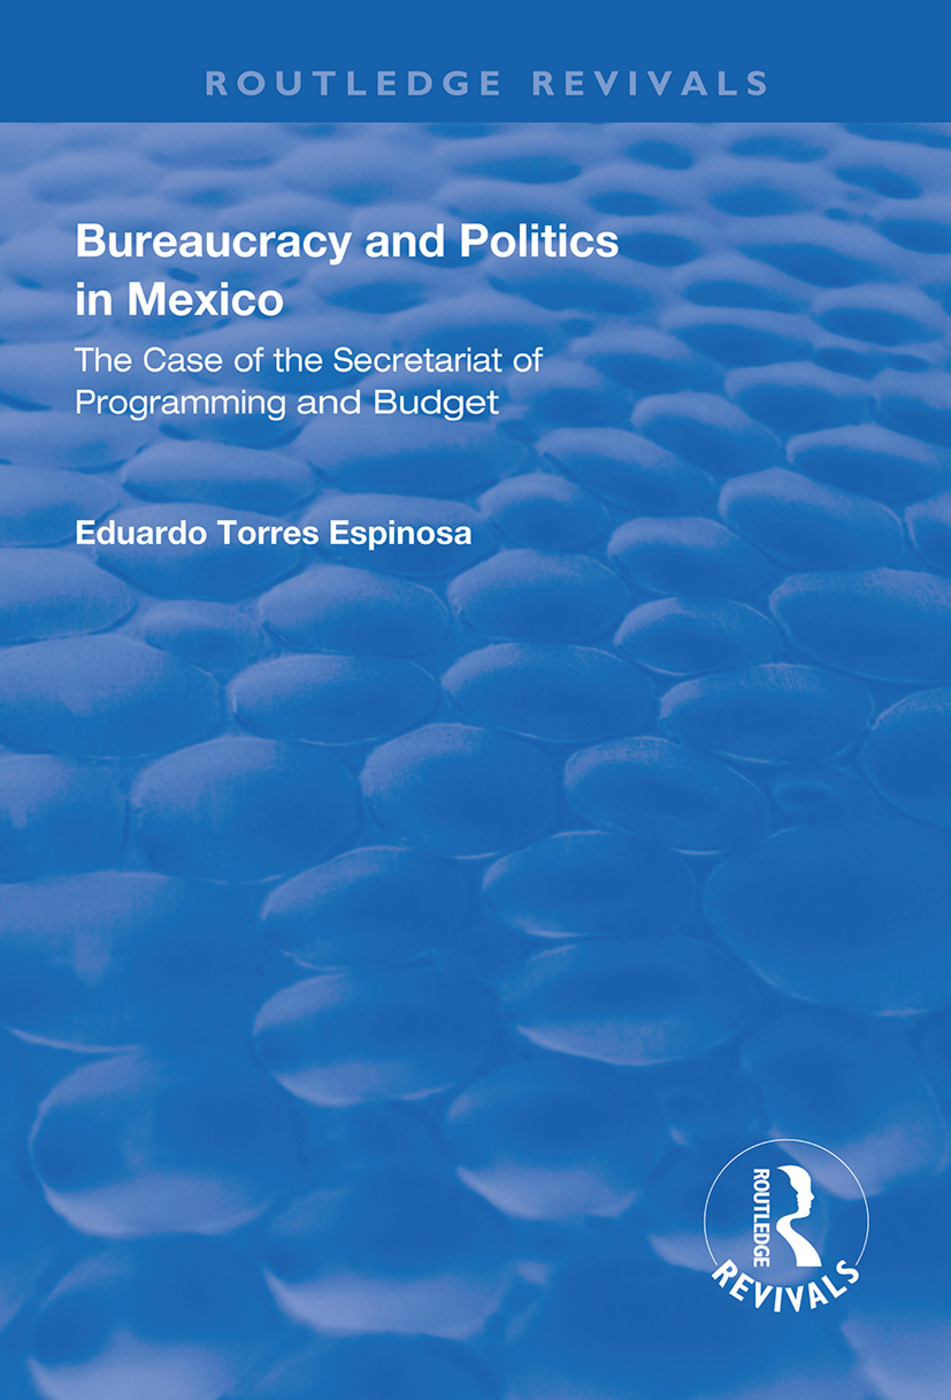 Bureaucracy and Politics in Mexico: The Case of the Secretariat of Programming and Budget book cover